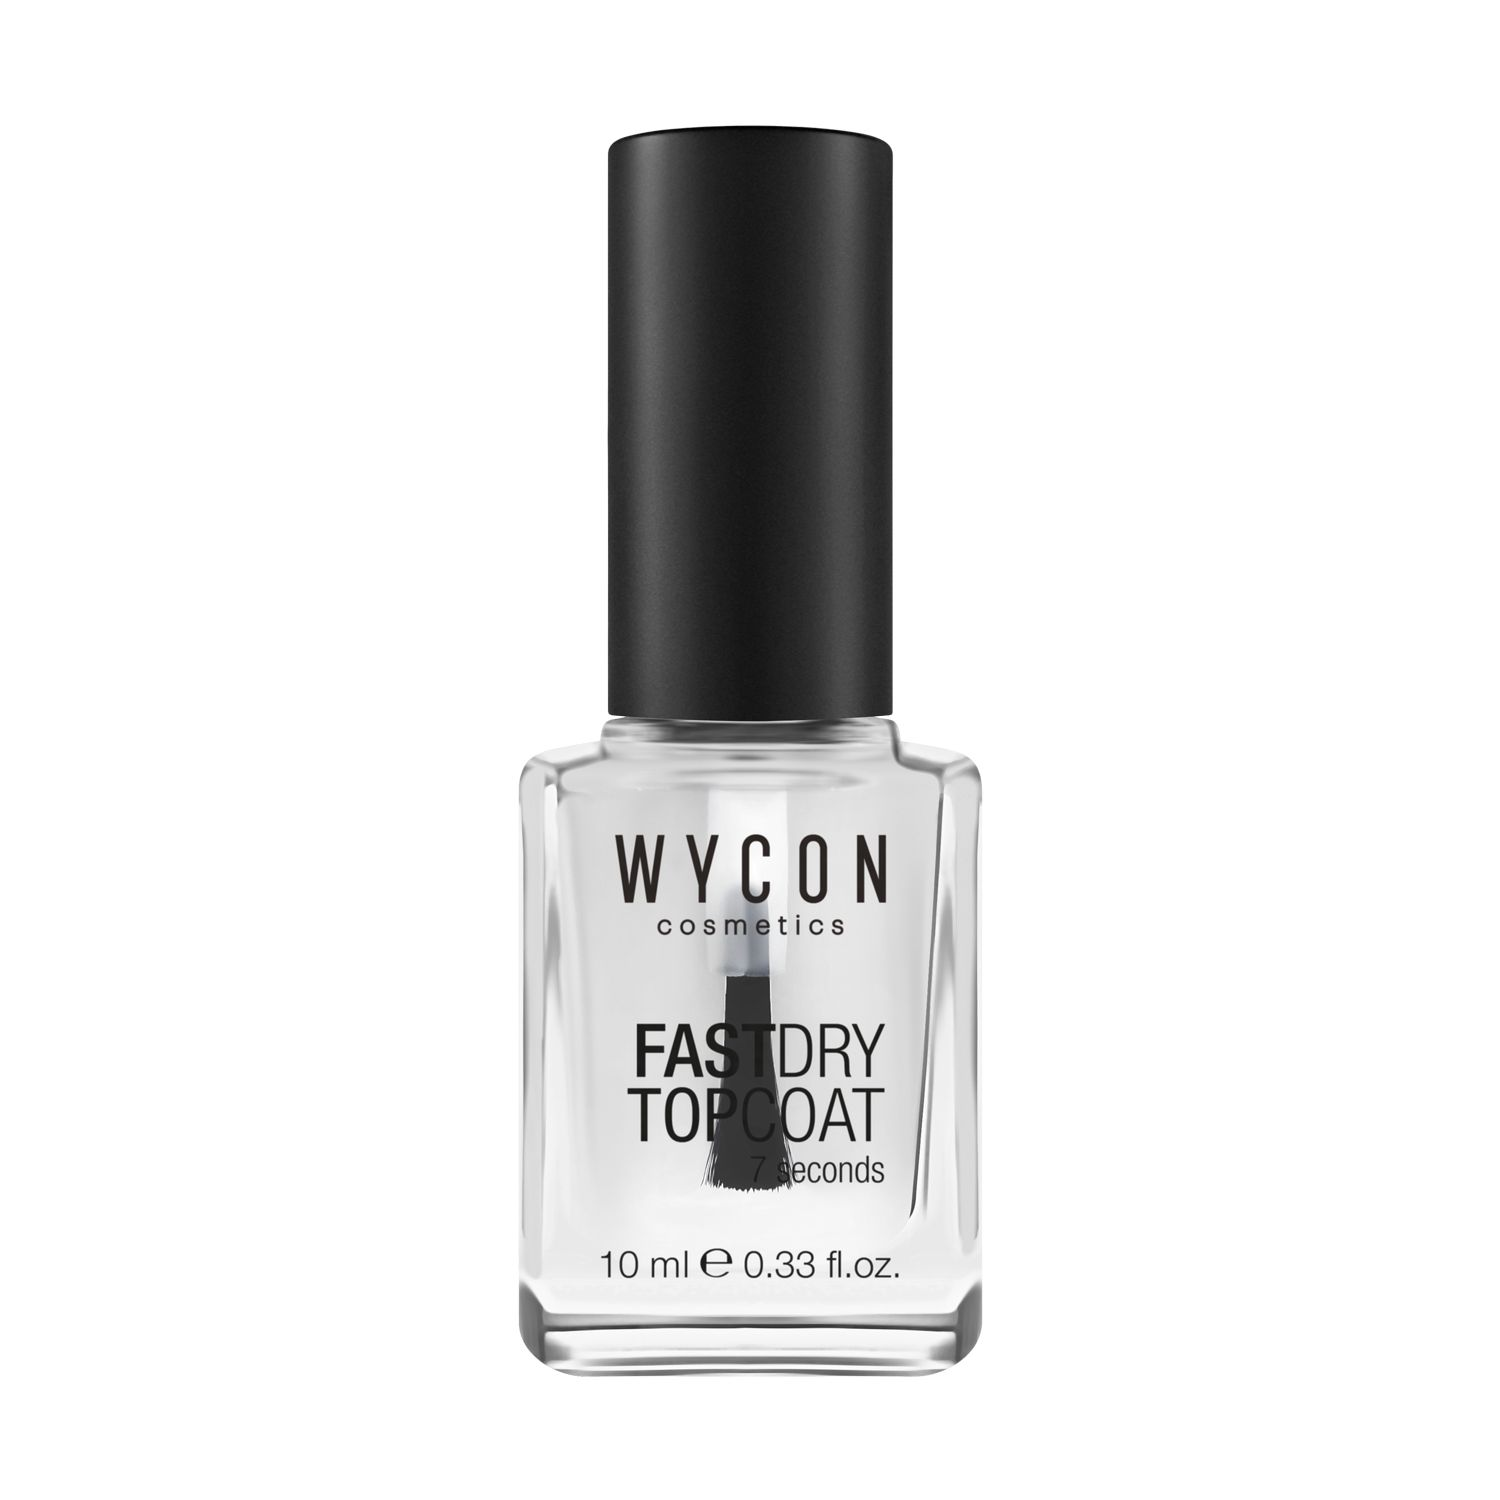 FAST DRY TOP COAT | WYCON cosmetics: Shop Online Make Up